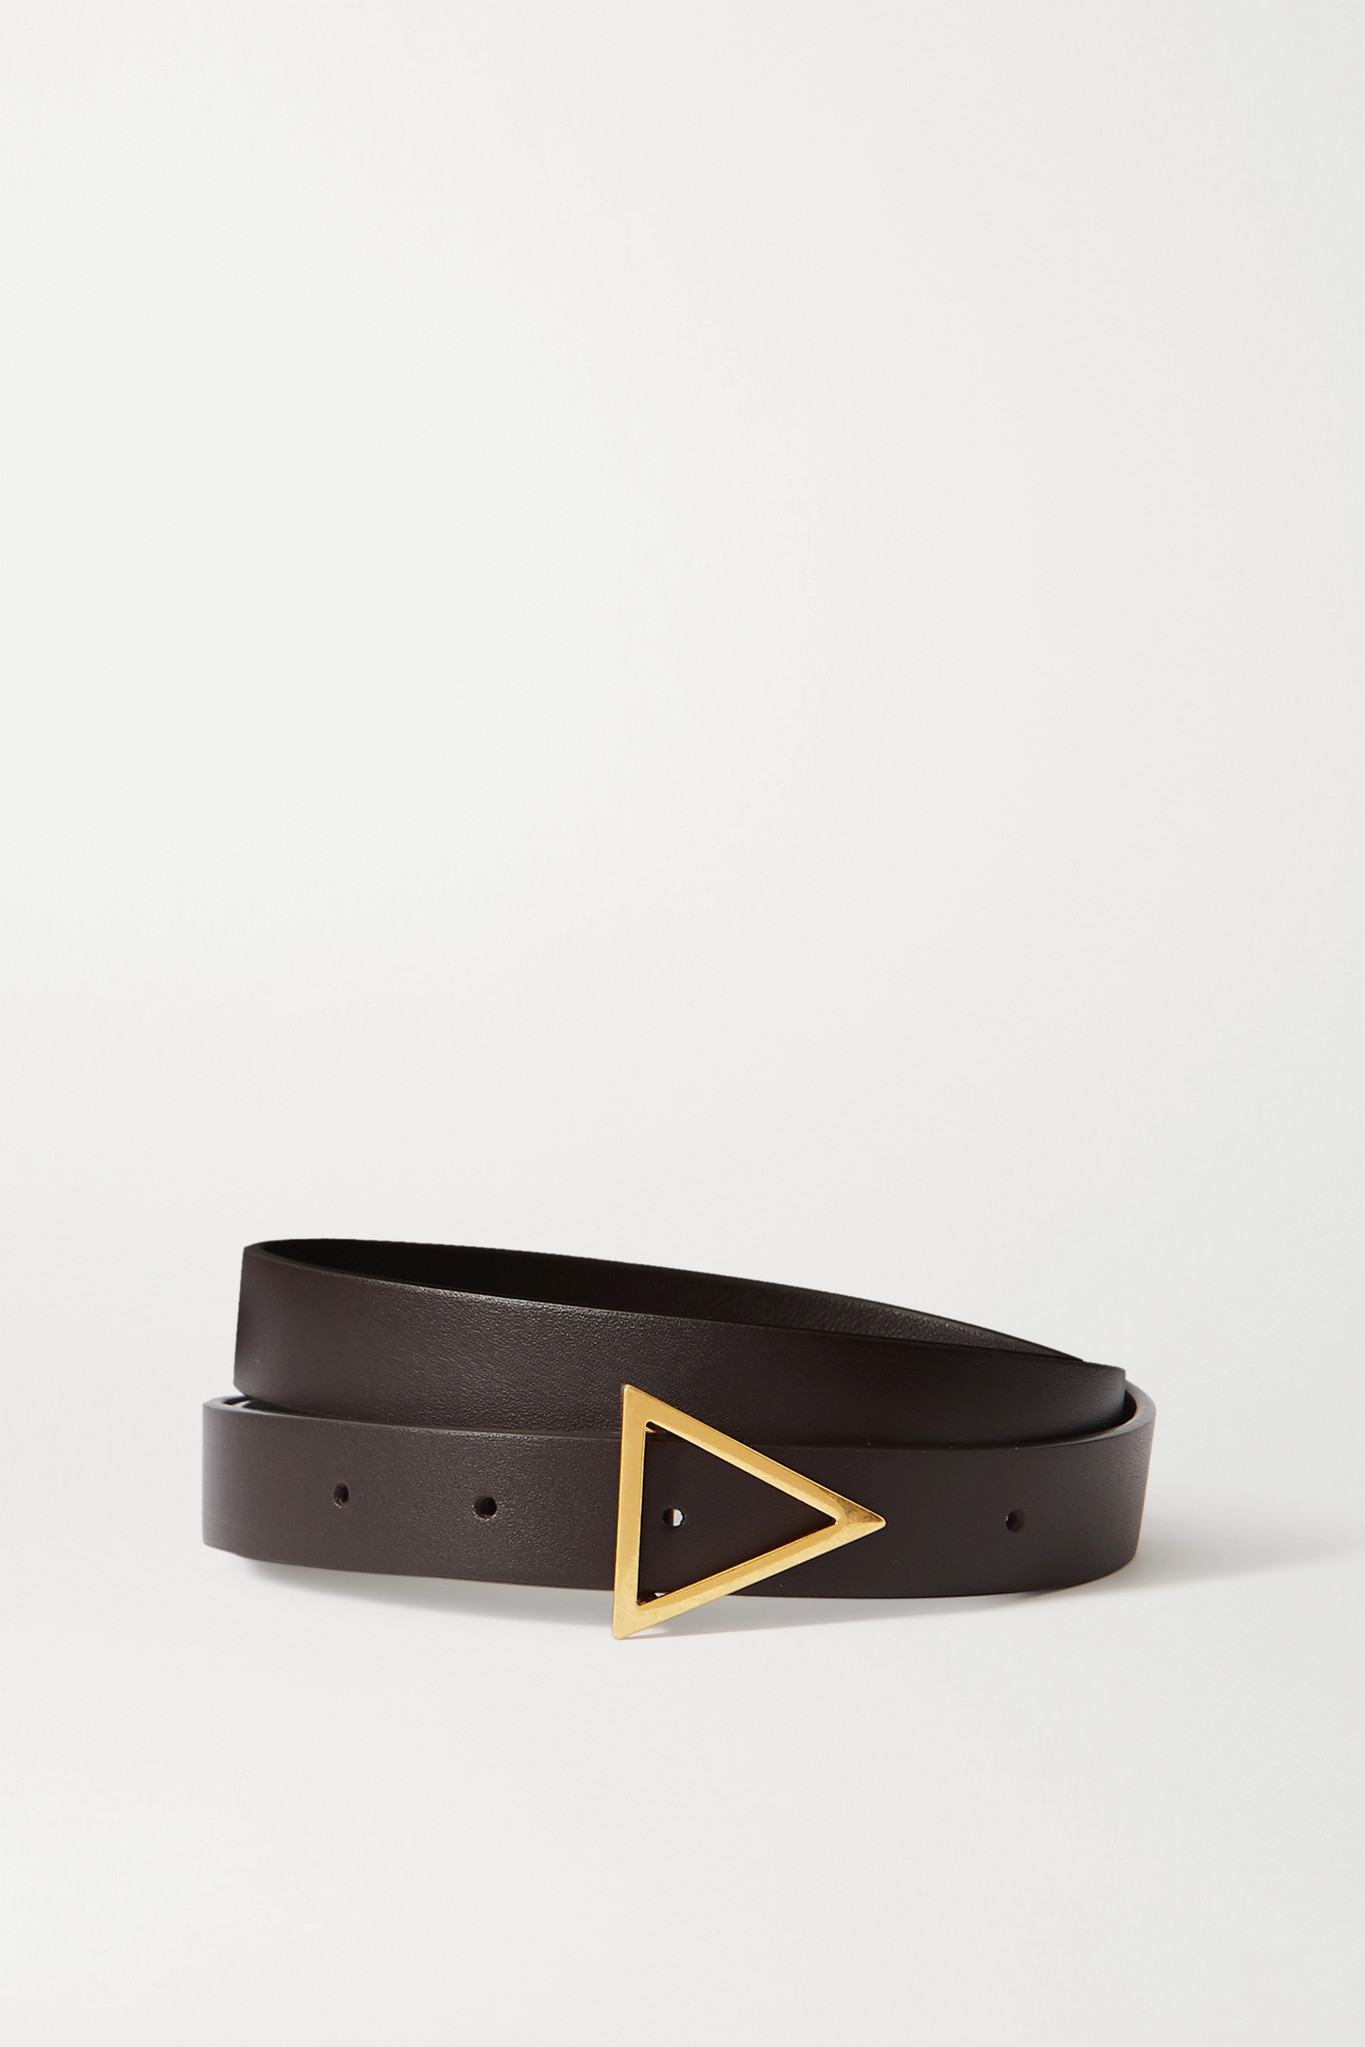 BOTTEGA VENETA - Leather Belt - Brown - 65